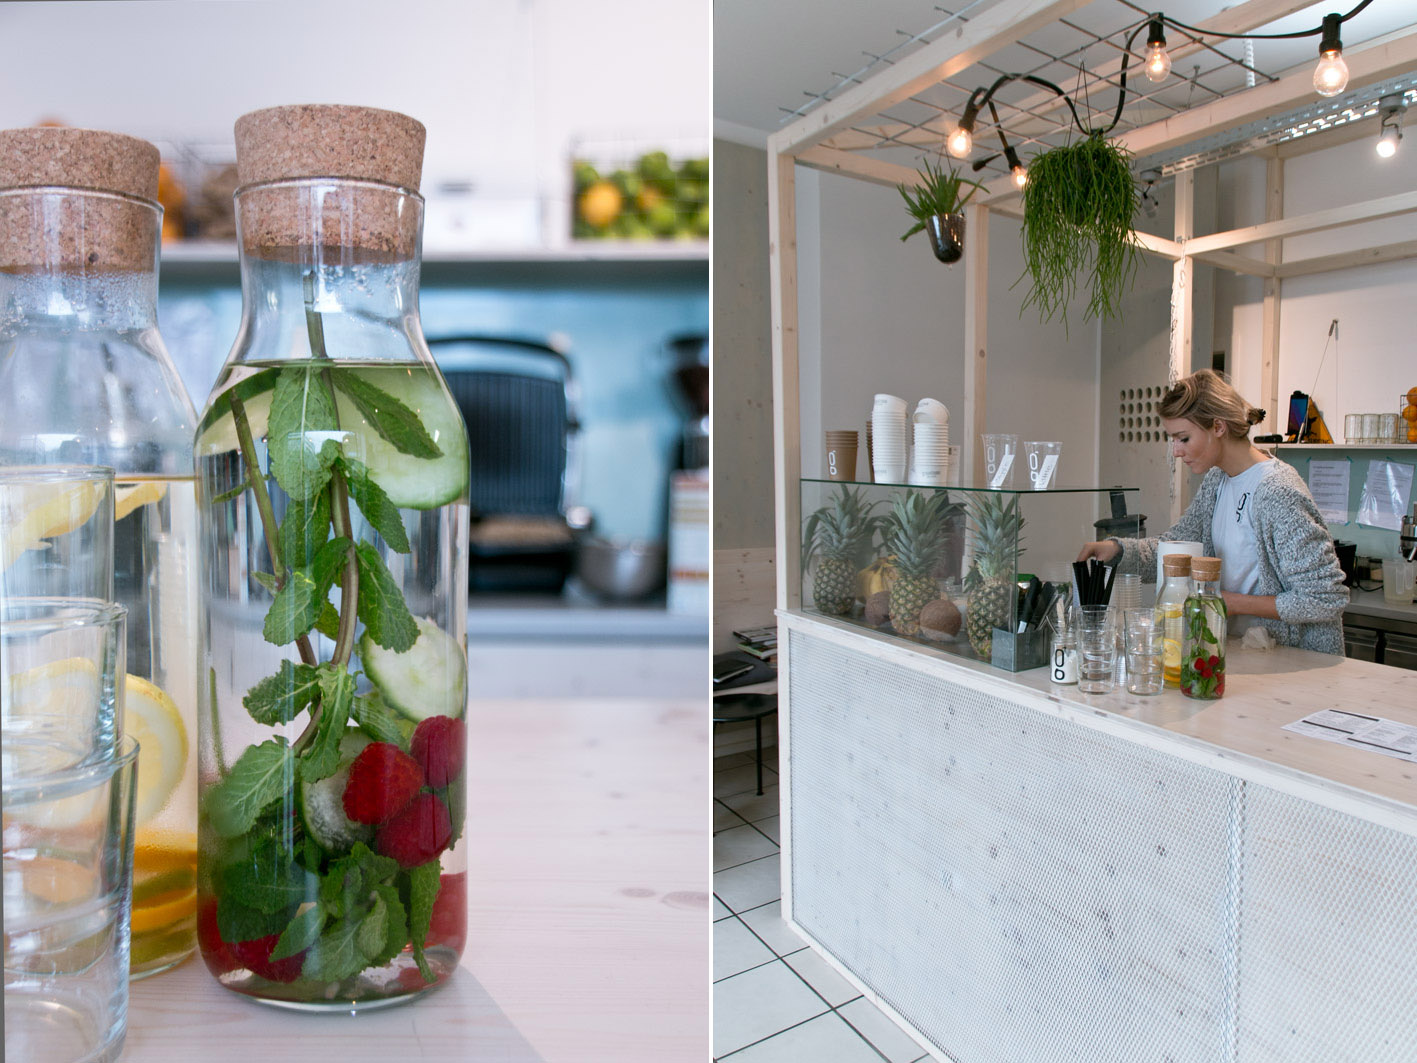 greentrees infused water